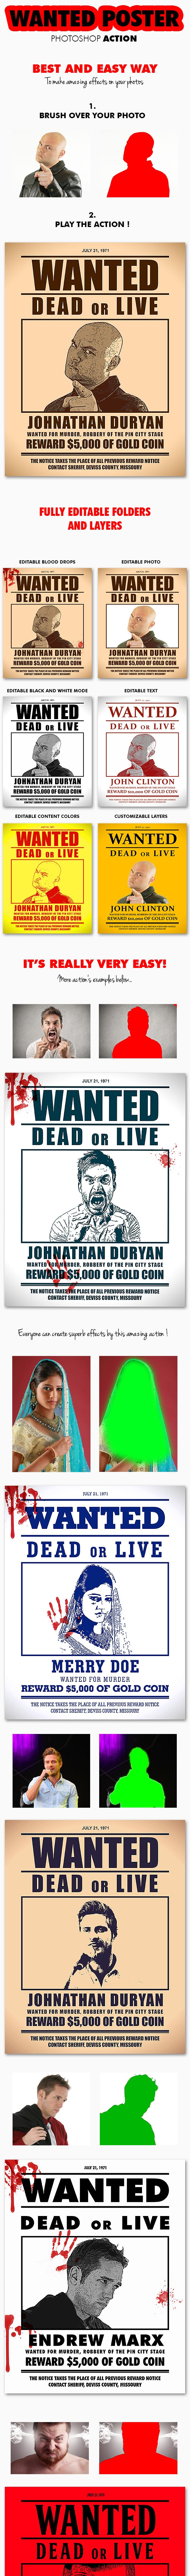 Wanted Poster Photoshop Action ( 8.5x11 Inch ) - Photo Effects Actions